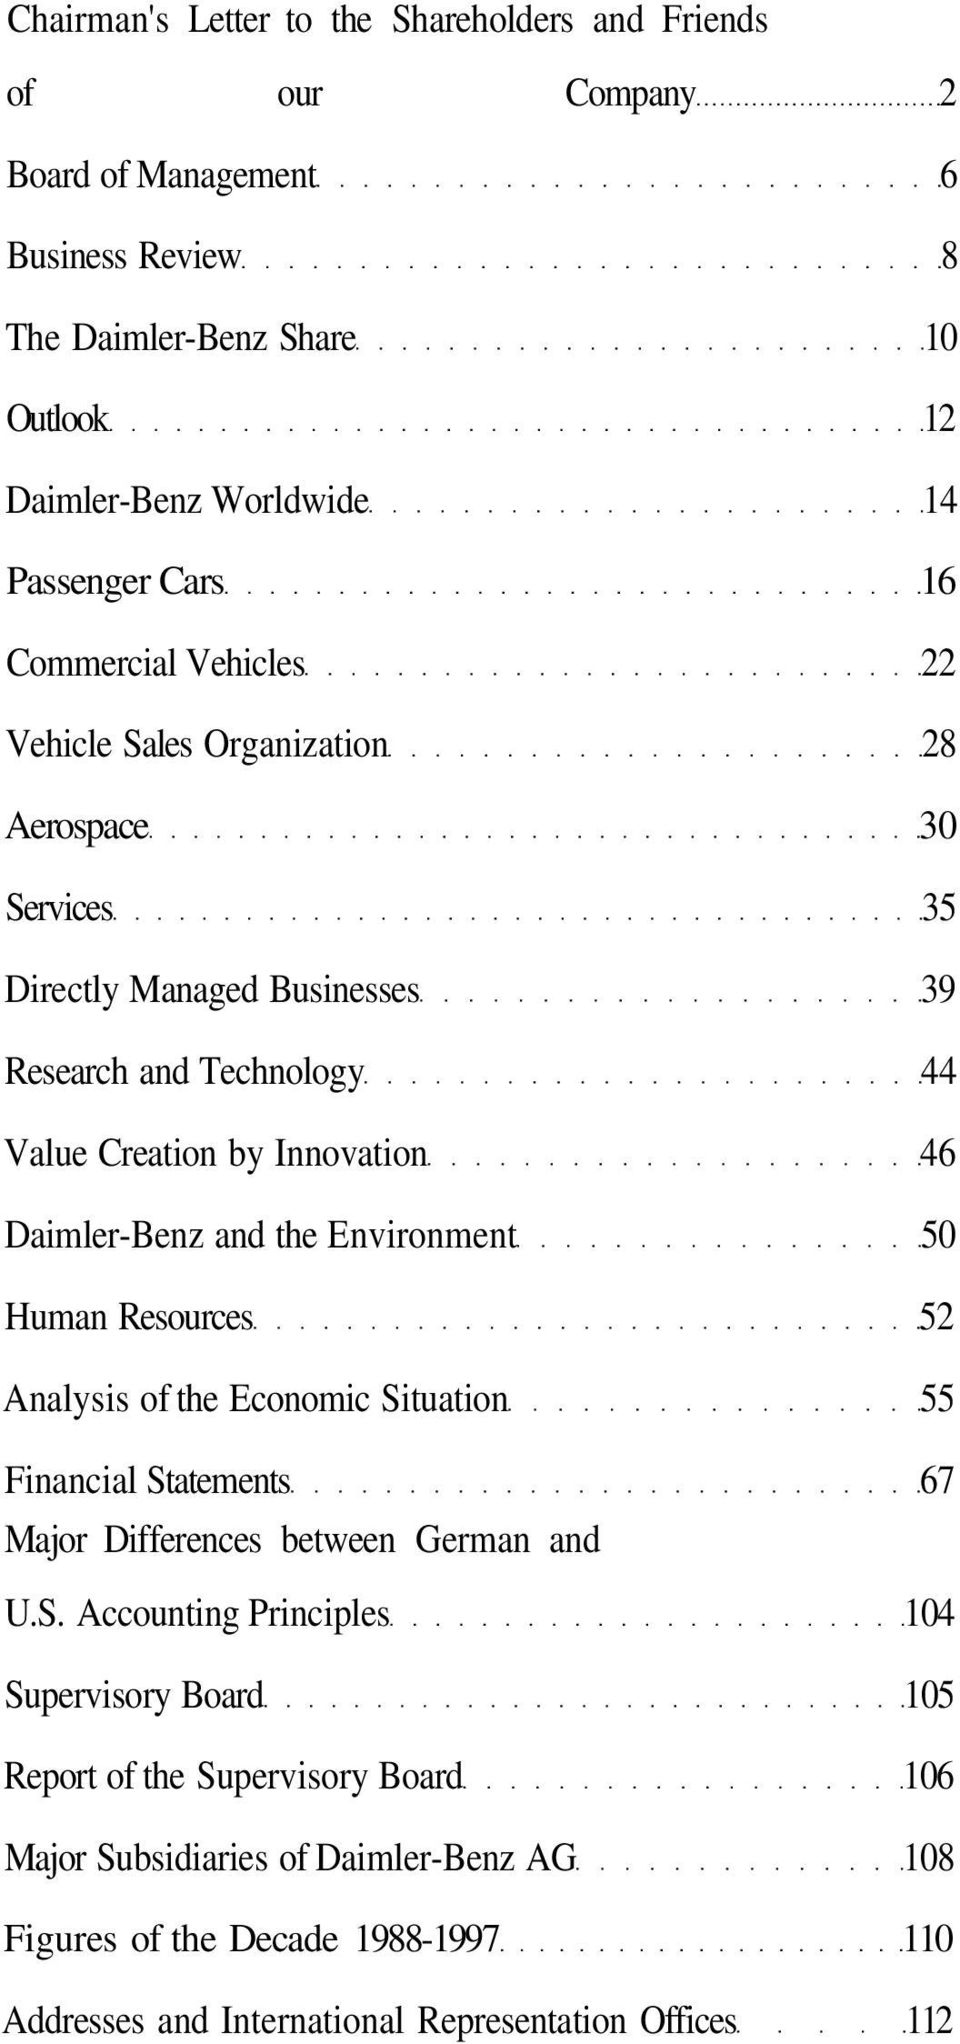 Daimler-Benz and the Environment 50 Human Resources 52 Analysis of the Economic Si